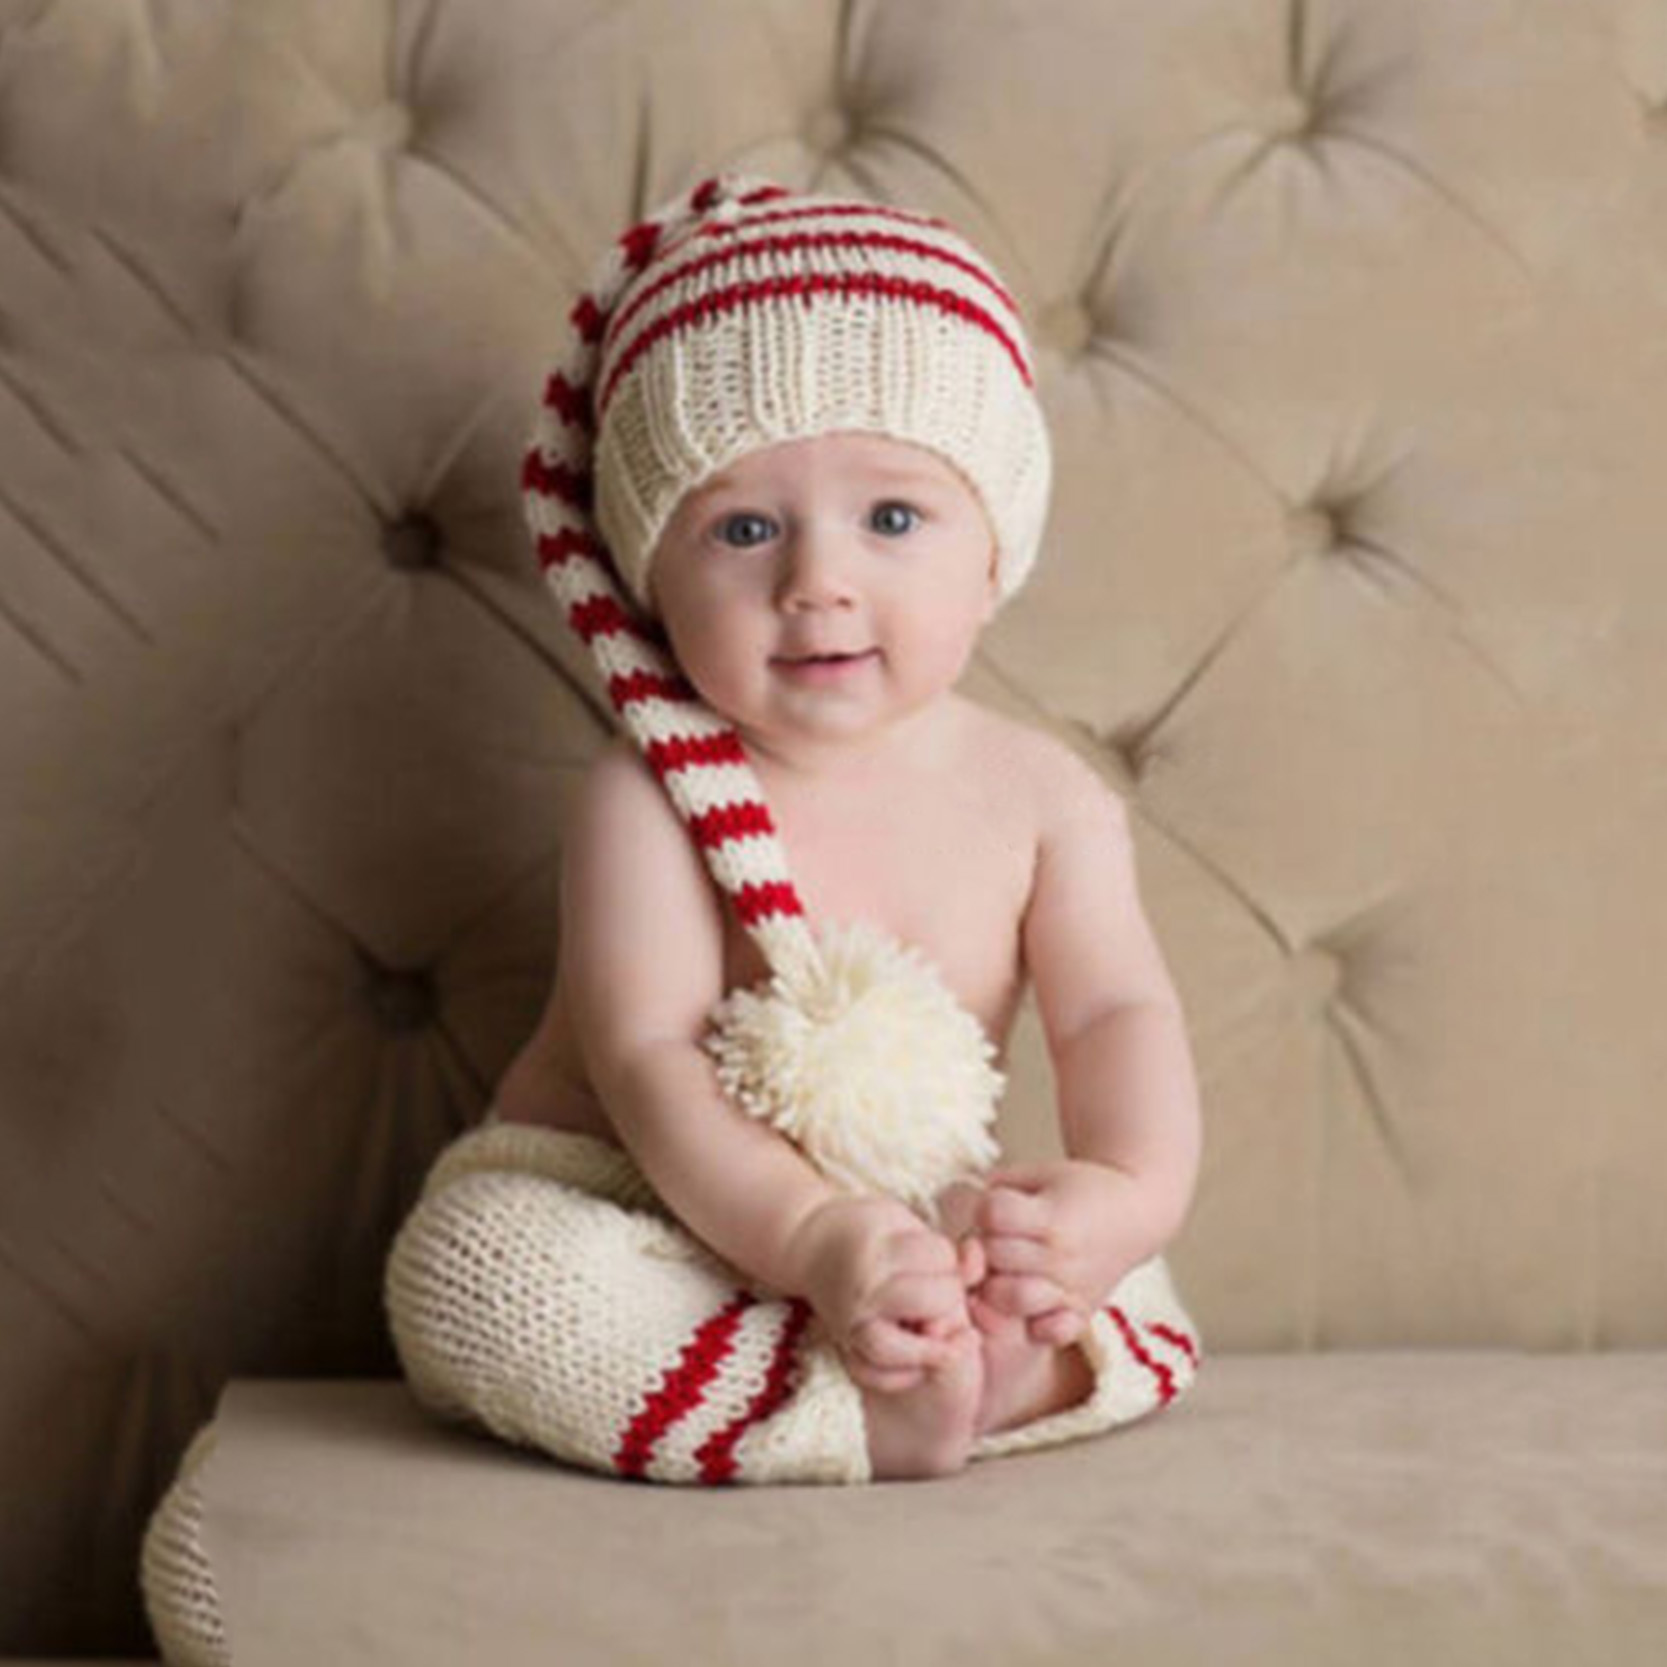 Baby Cute Newborn Photography Props Handmade Knit Infant Striped Beanie Hat And Pants For Boy Girl 0-6 Months cute caterpillar newborn baby boy girl photography suit infant knit outfit